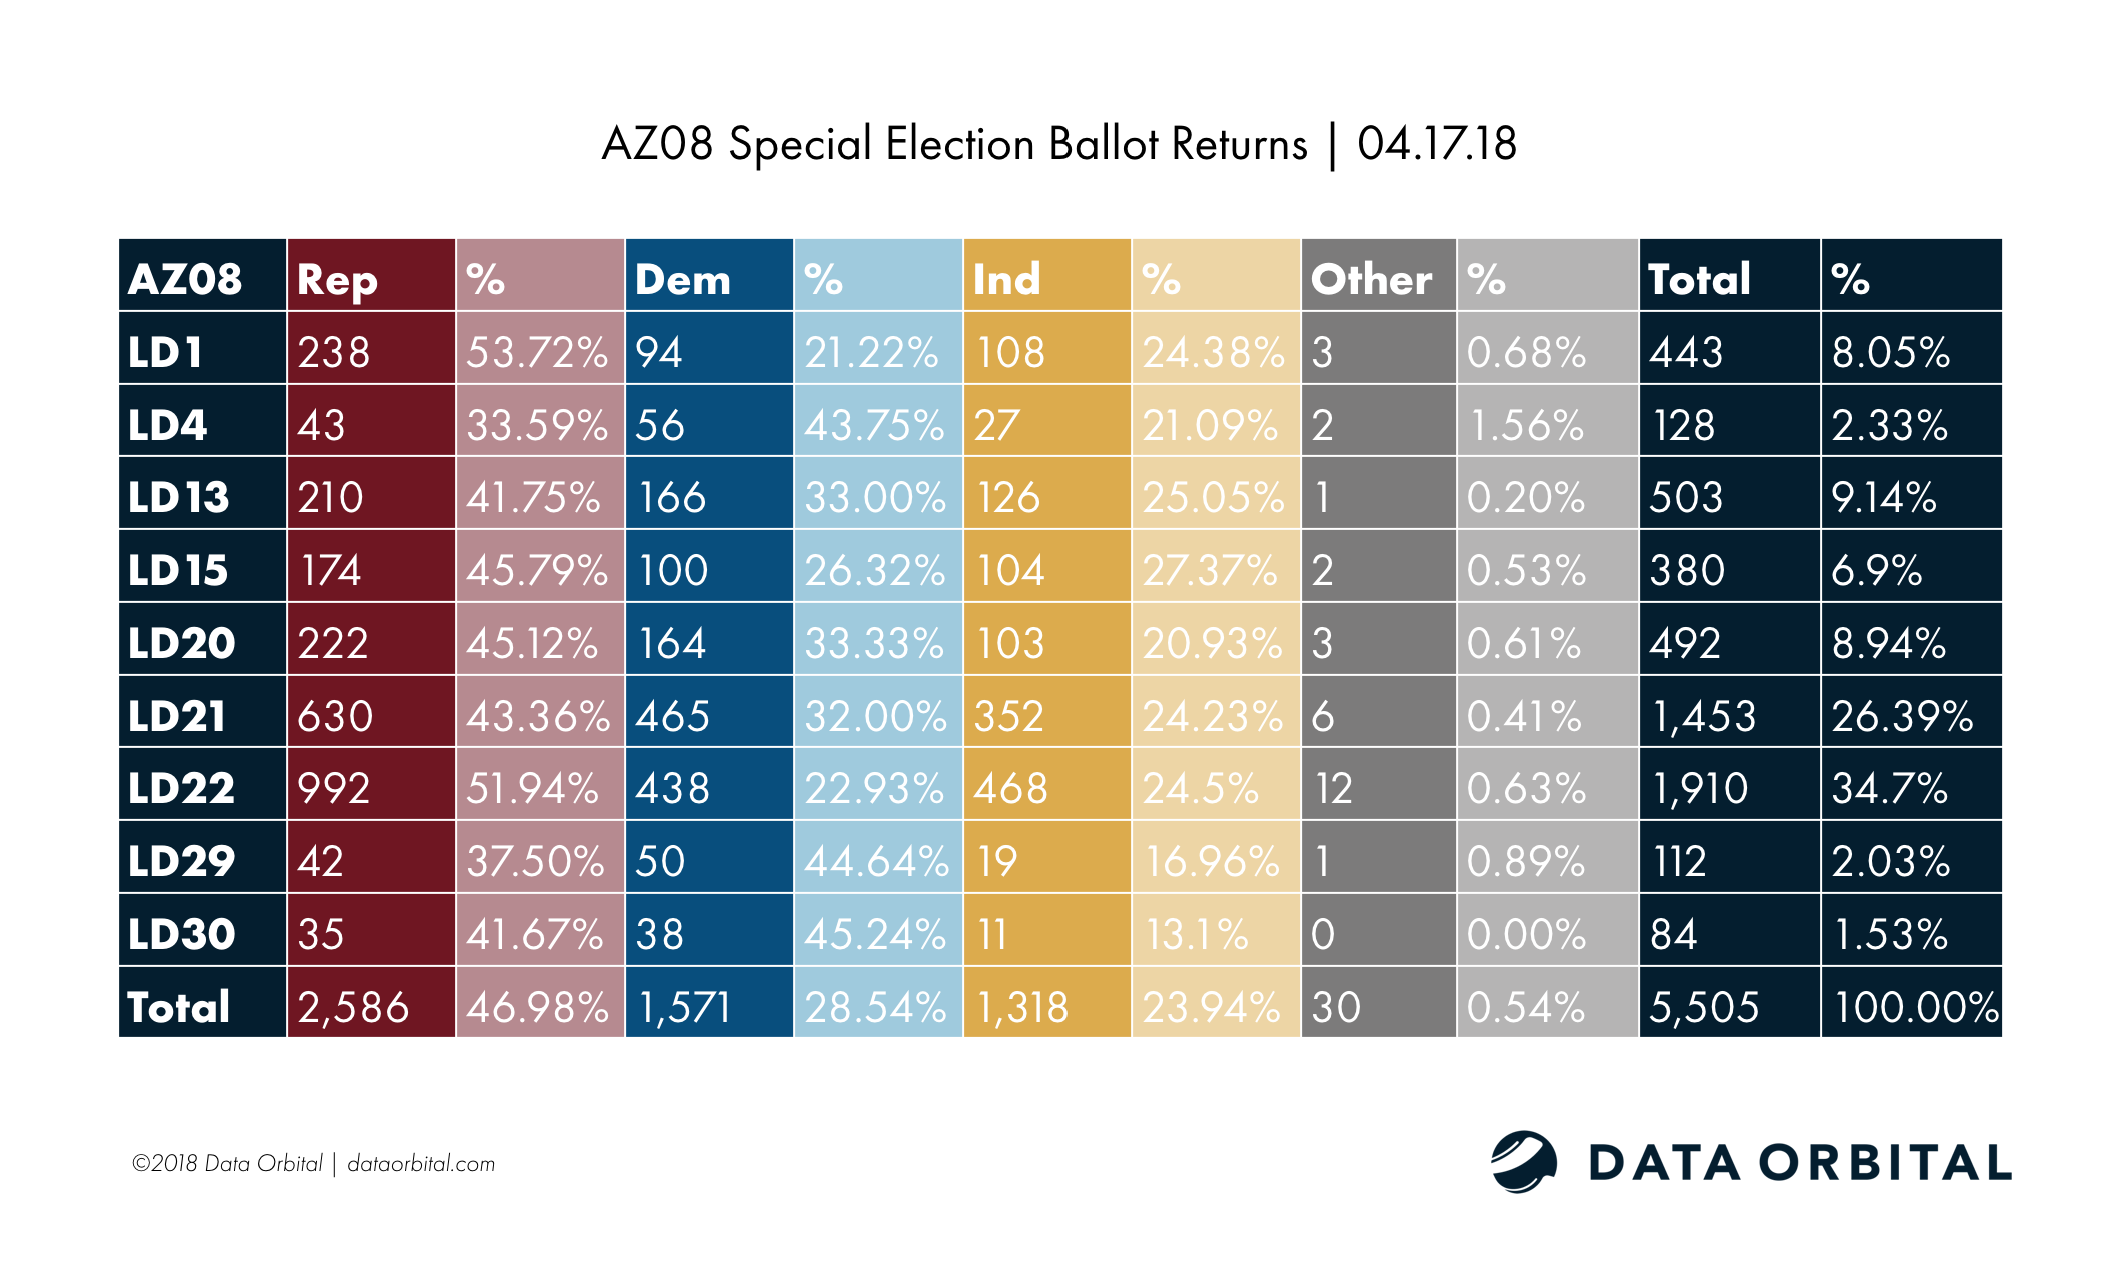 AZ08 Special Election Ballot Returns 04.17.18